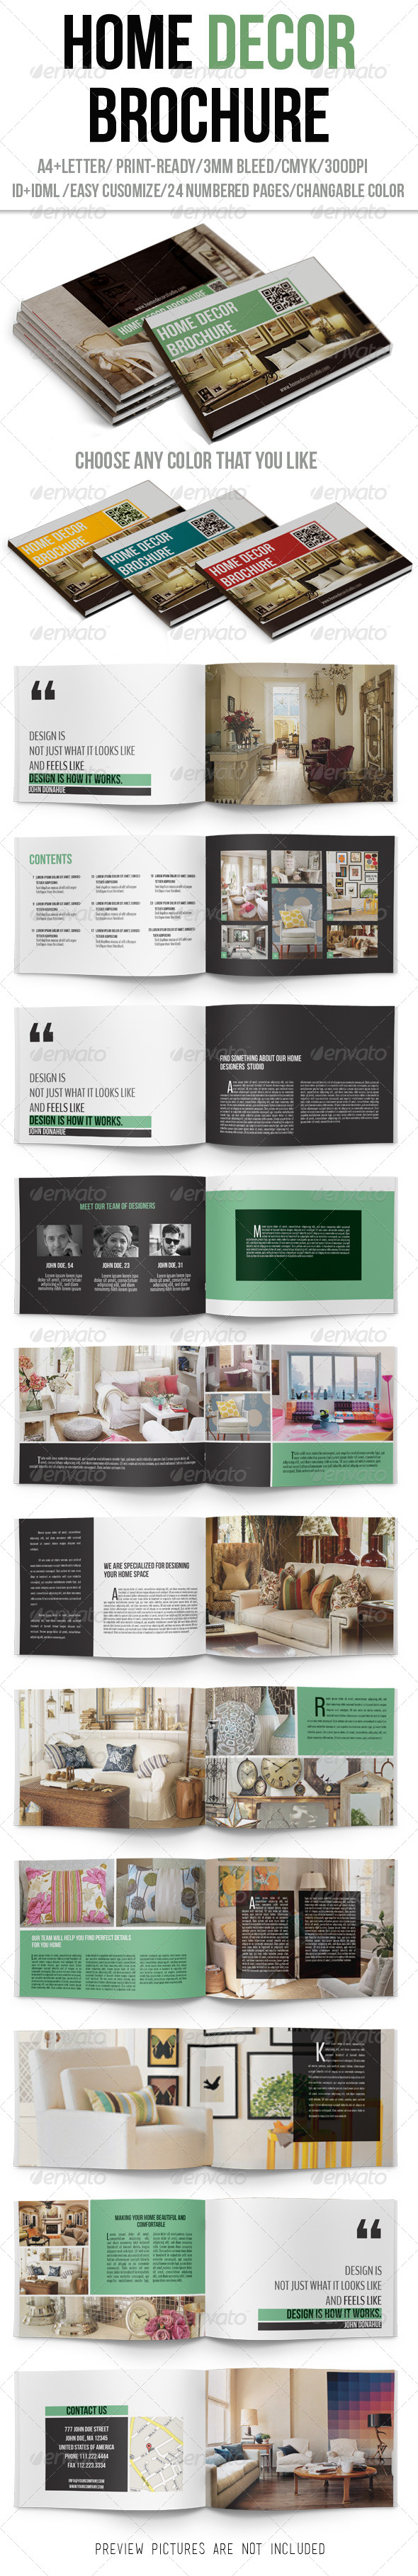 GraphicRiver Home Decor Brochure 6436702